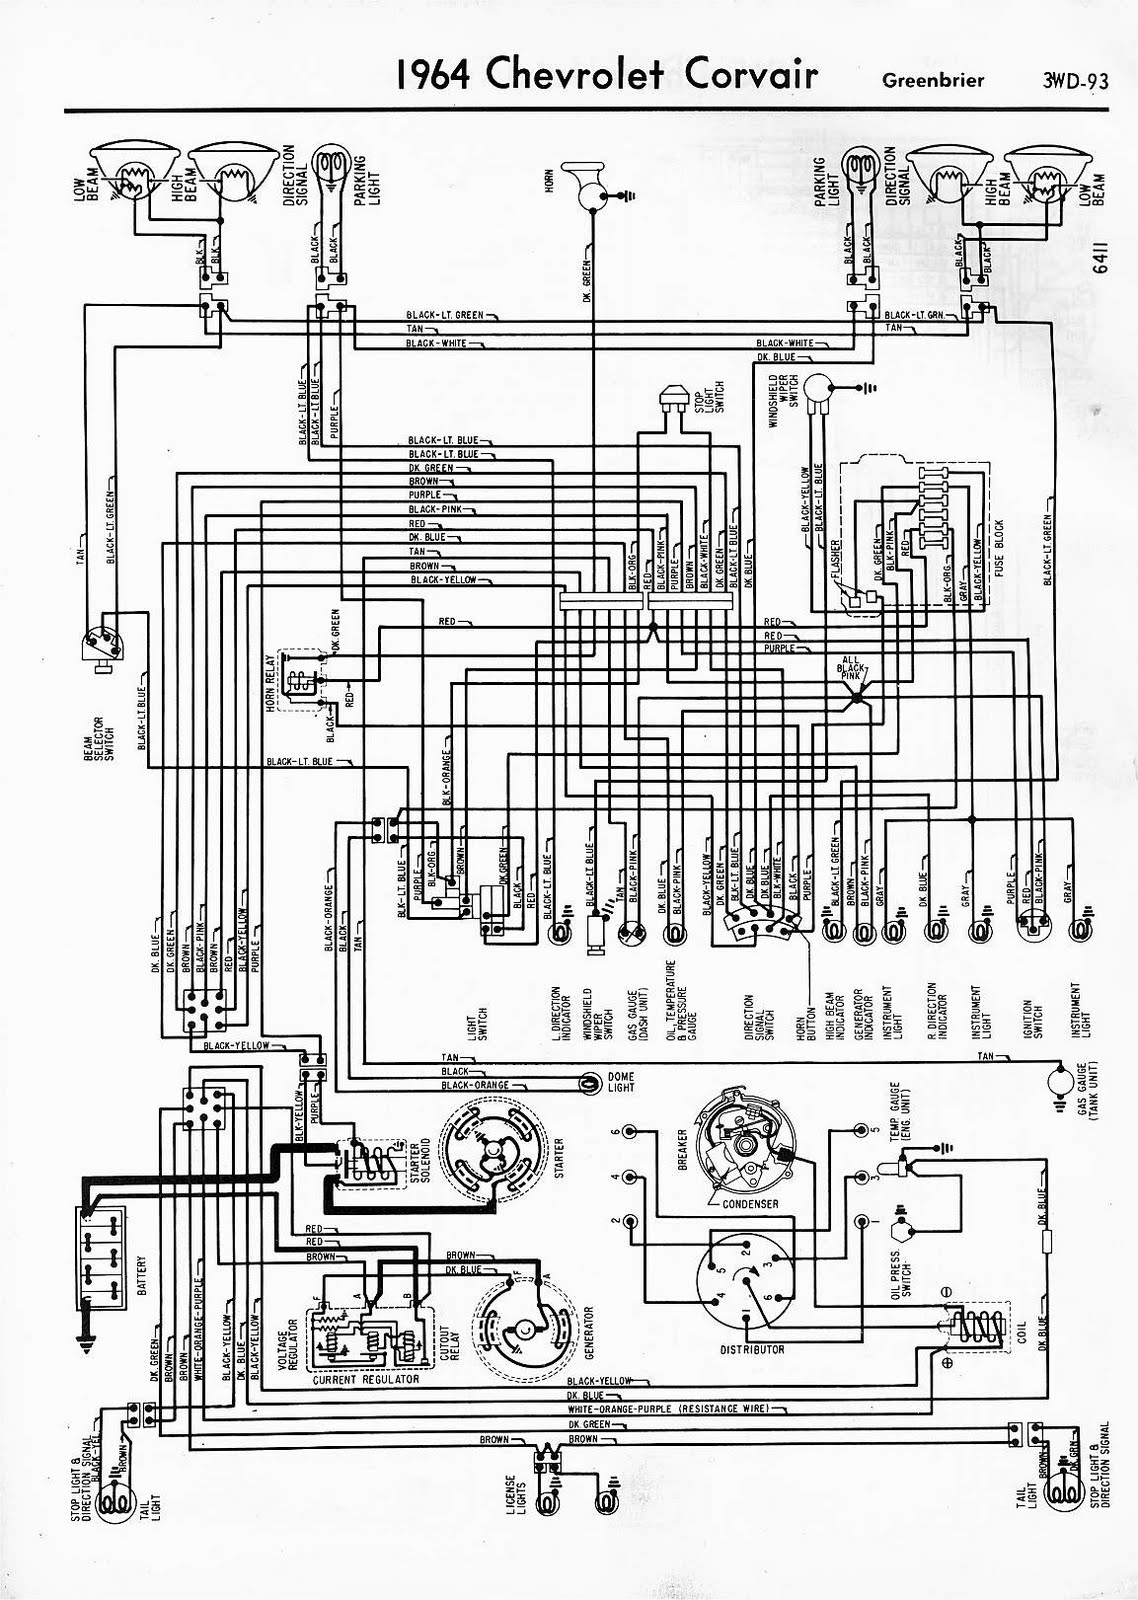 Chrysler Electronic Ignition Diagram Wiring Will Be A Thing Free Auto 1964 Chevrolet Corvair